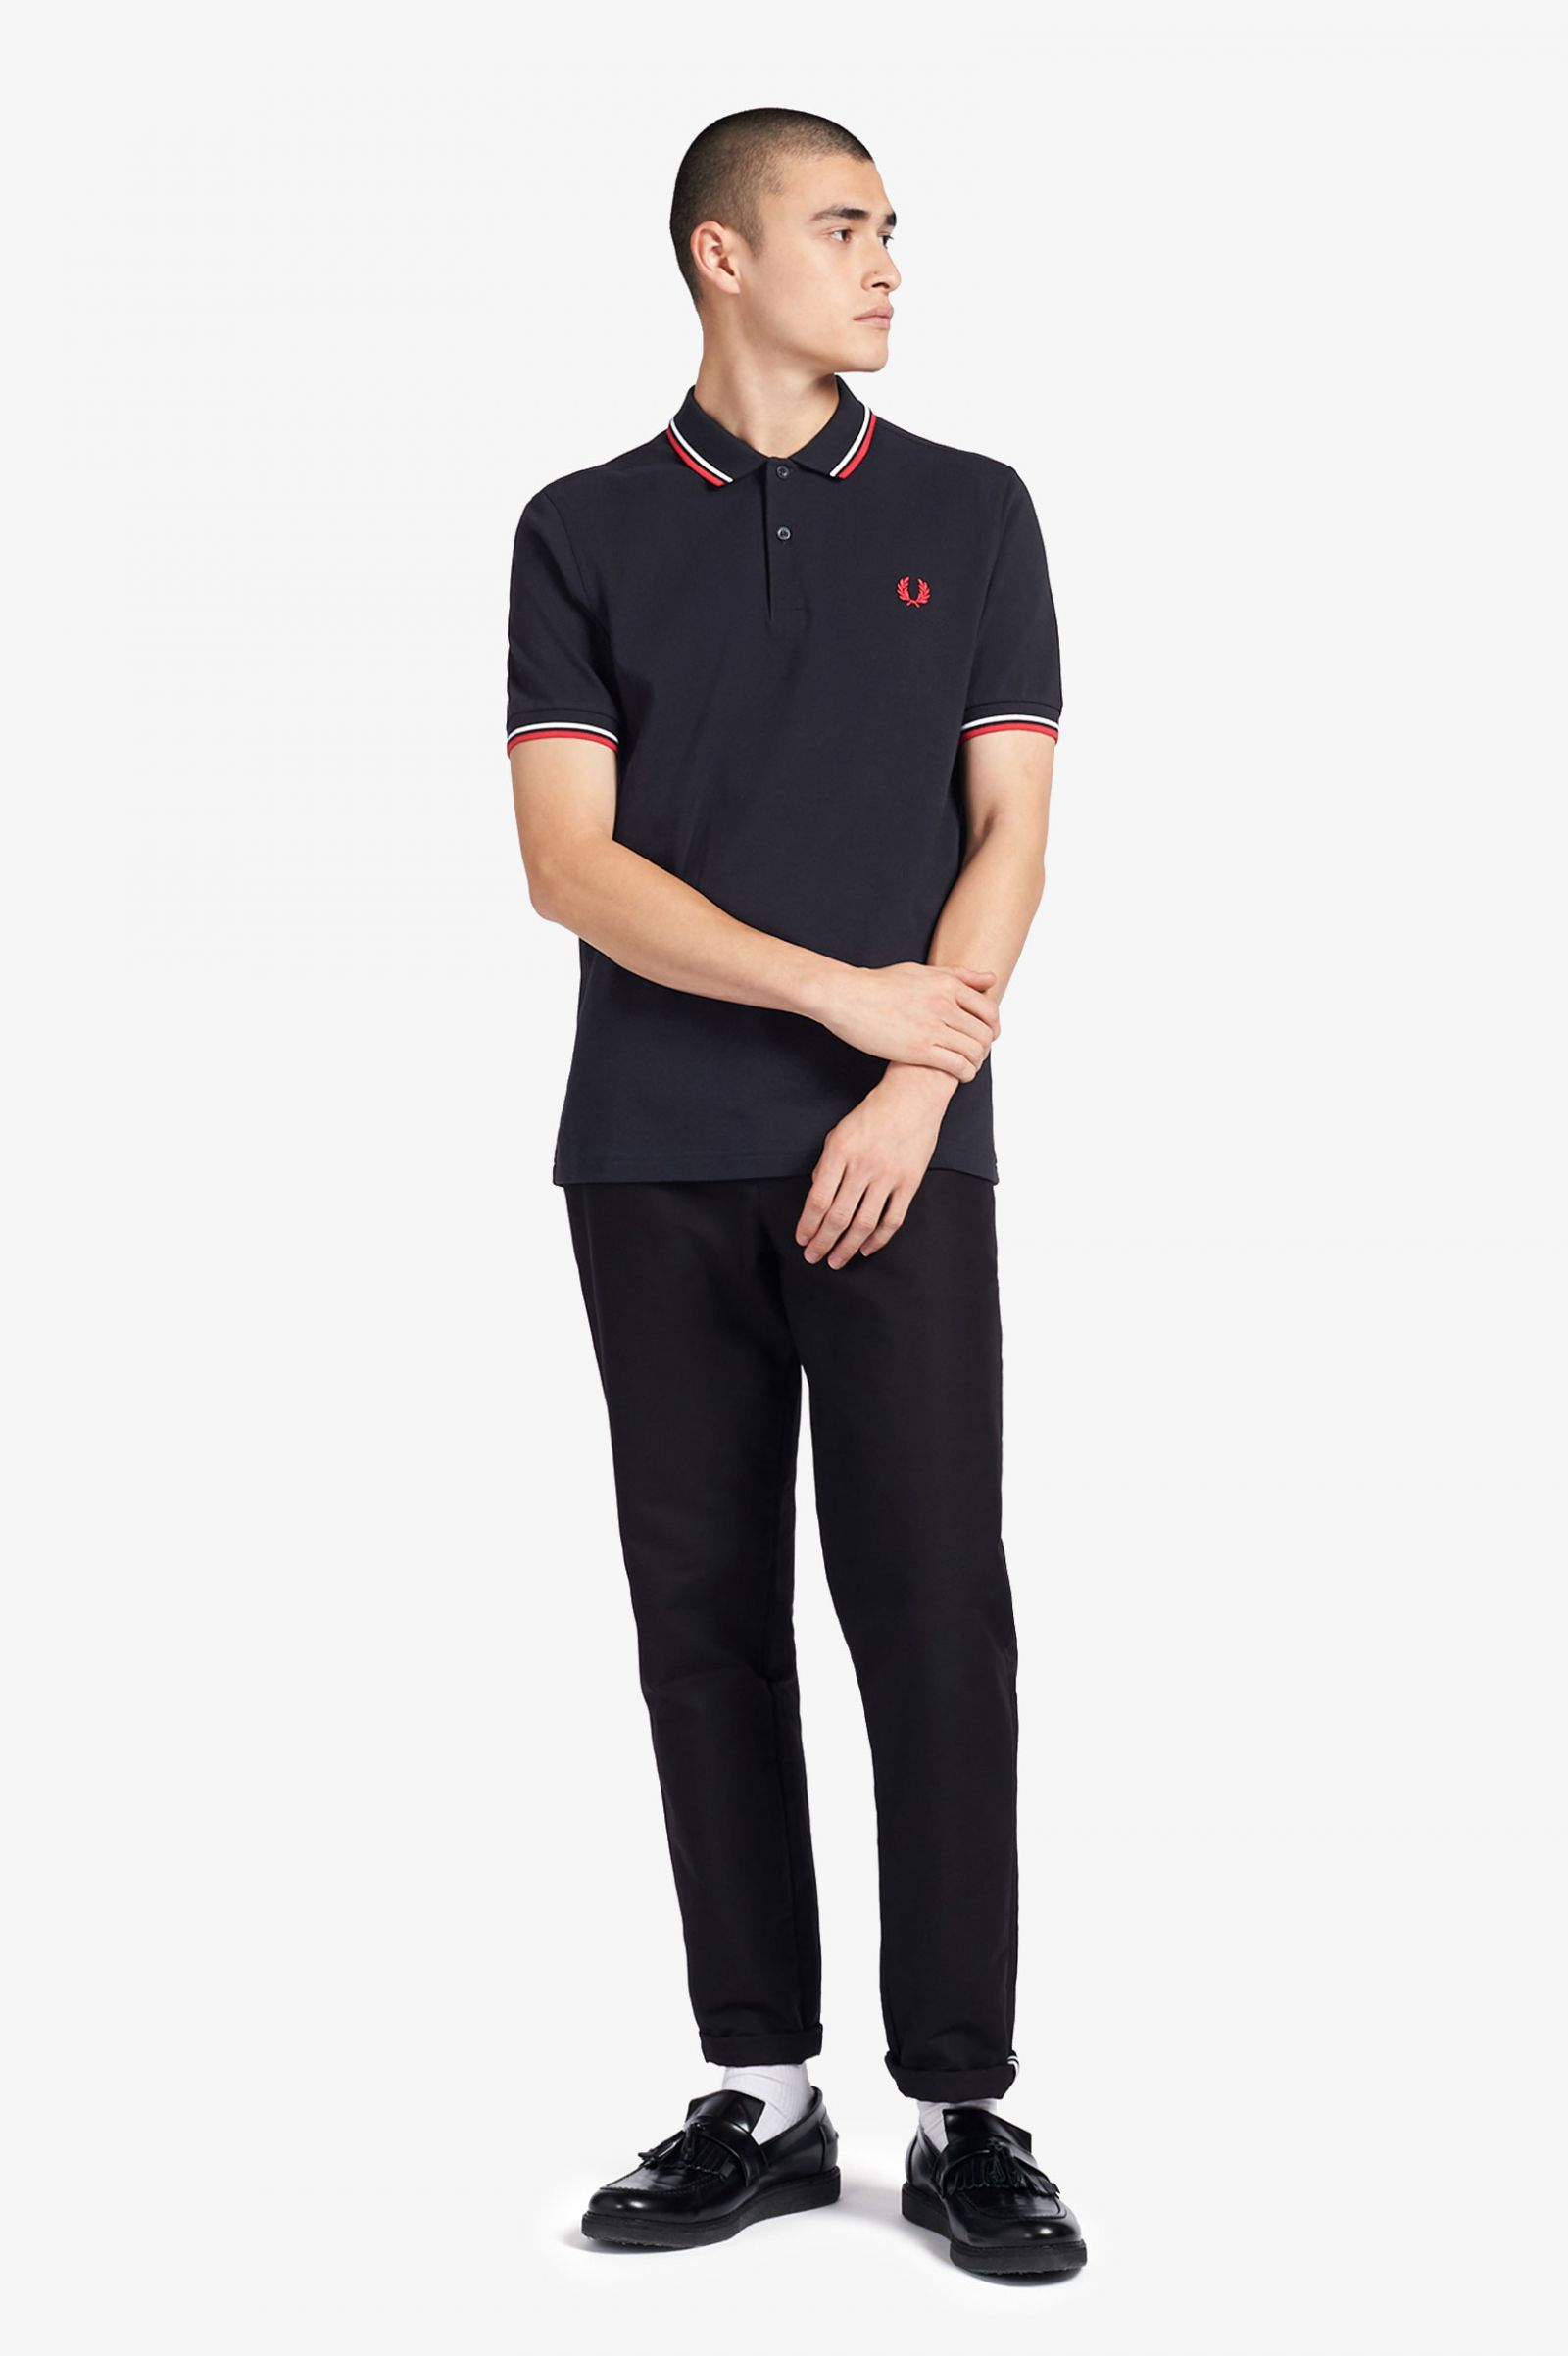 Fred Perry Navy Polo T-Shirt Navy//Red//White Twin Tipped M3600-471